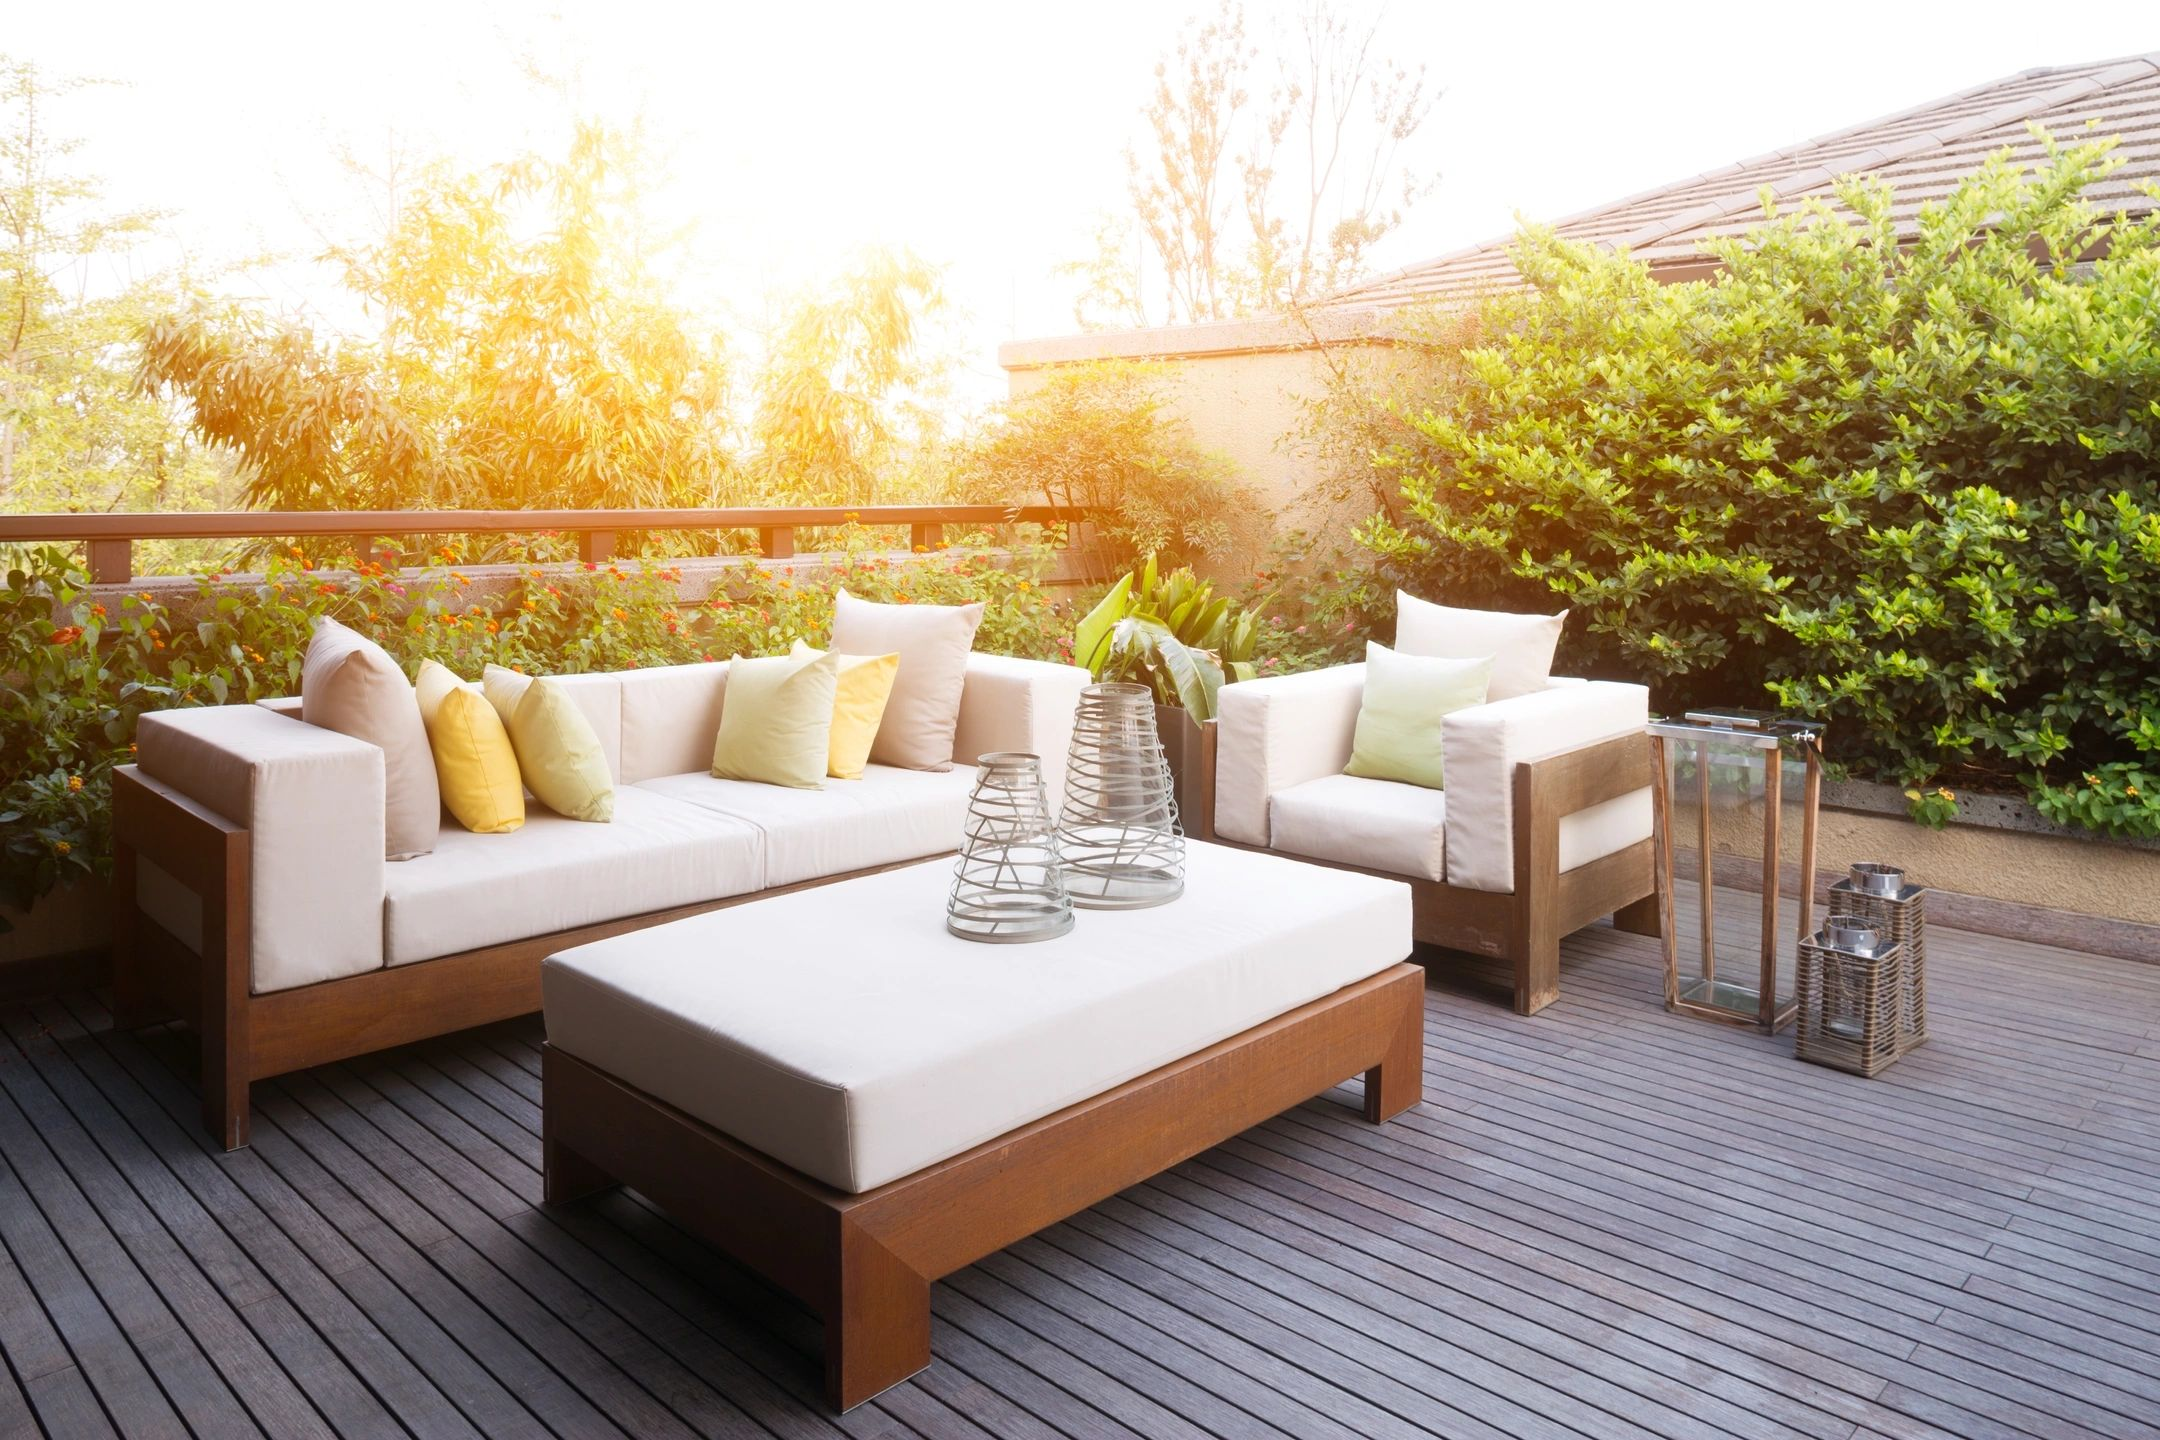 A photo of a outdoor furniture on a deck.